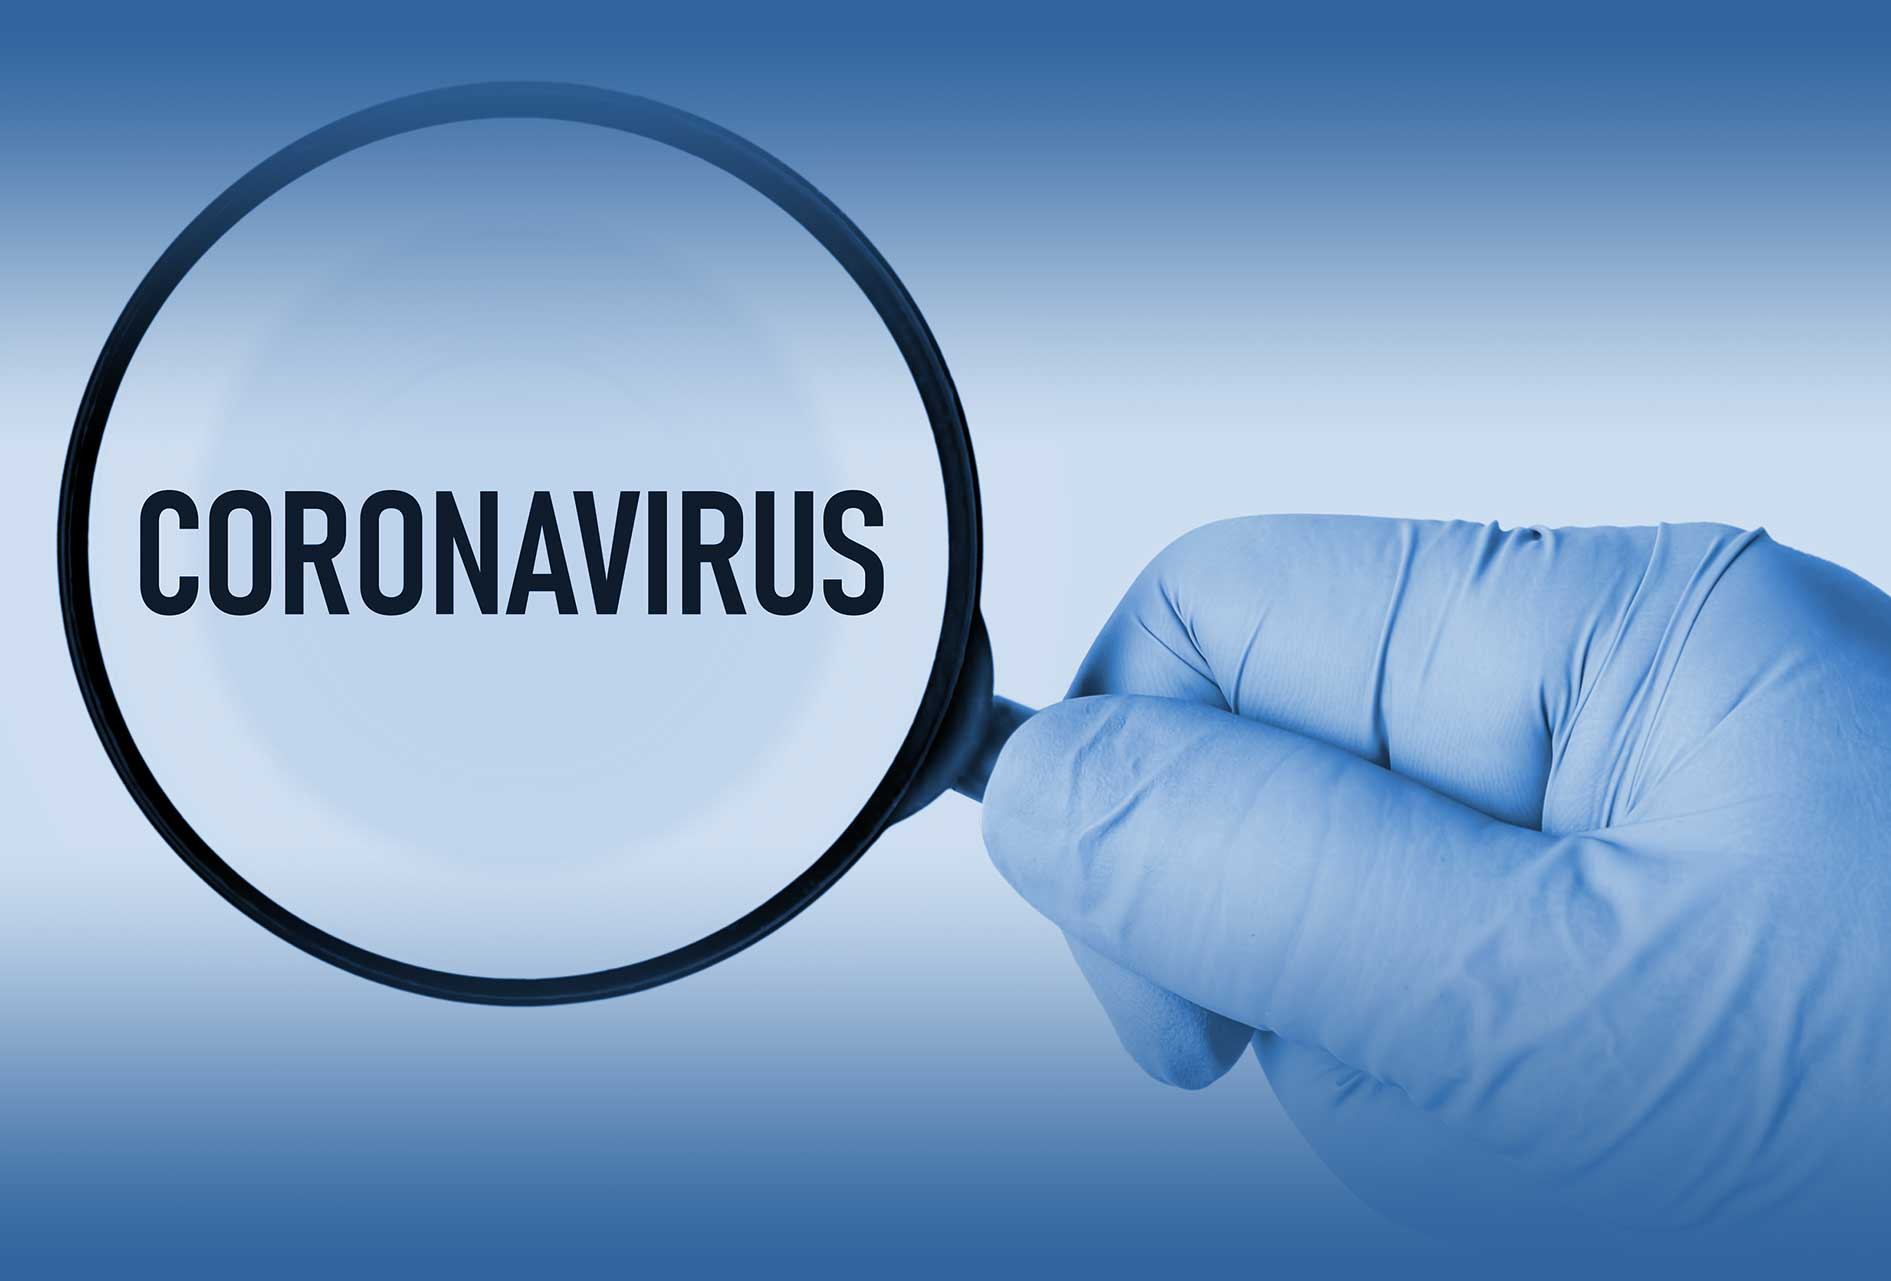 Ear Wax Removal and Coronavirus. A statement from Bath Ear Care